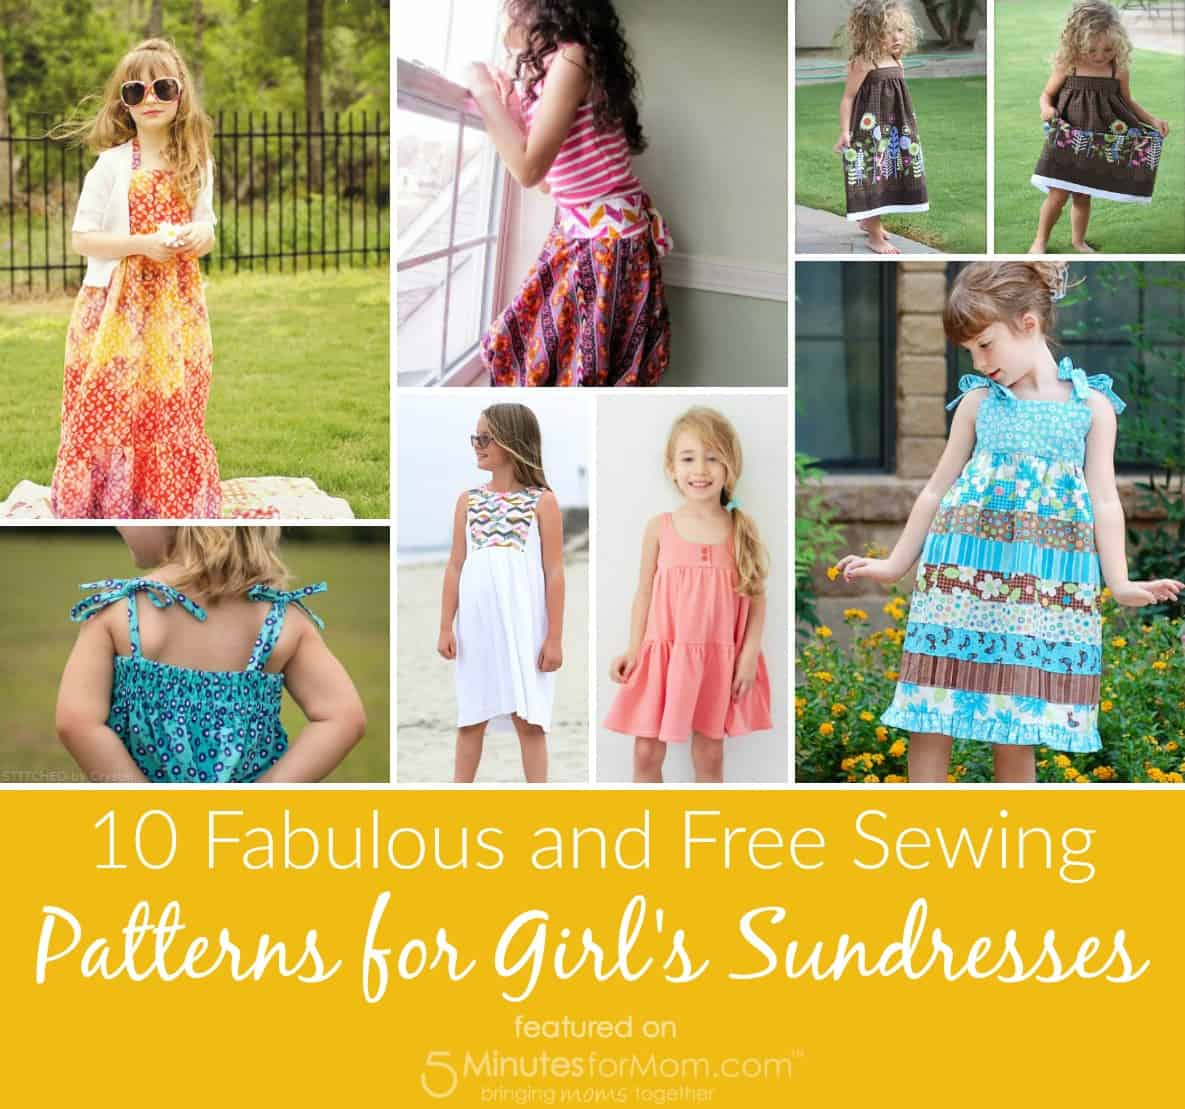 Sewing Patterns Sundresses for Girls